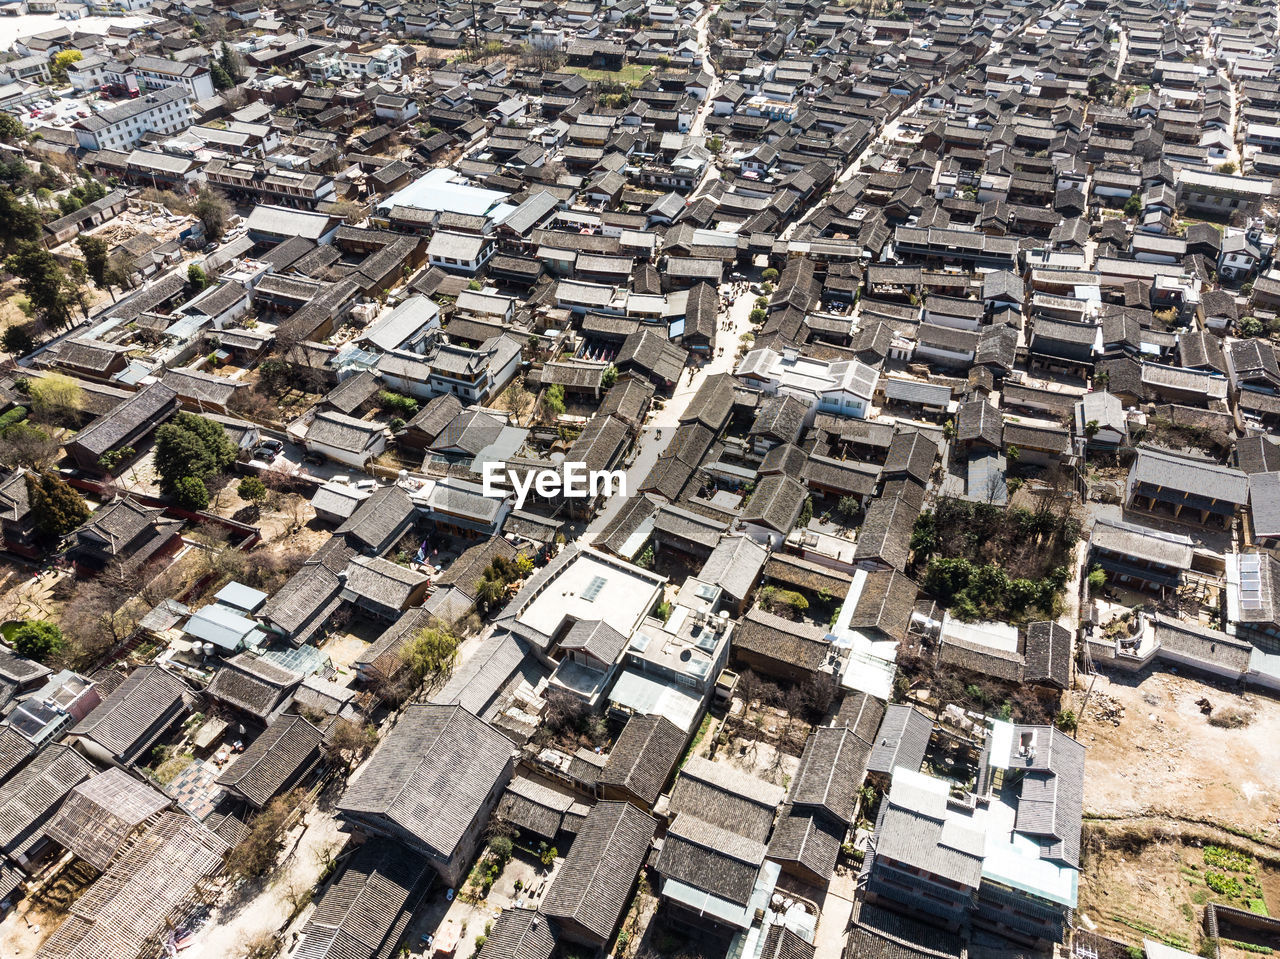 HIGH ANGLE VIEW OF TOWNSCAPE AGAINST CITYSCAPE